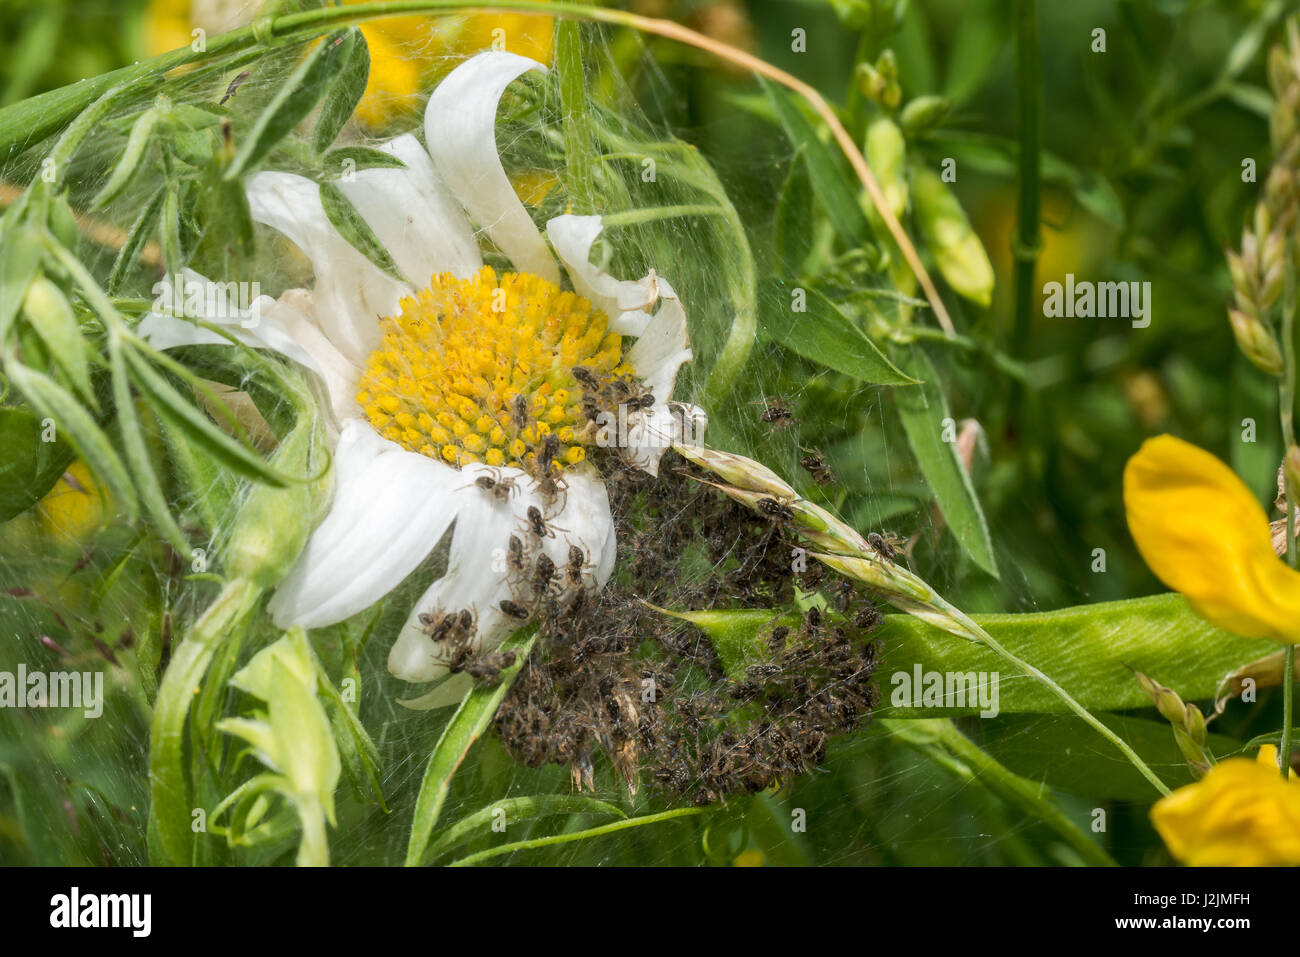 Spiderling creche or nursery on white Daisy - Stock Image